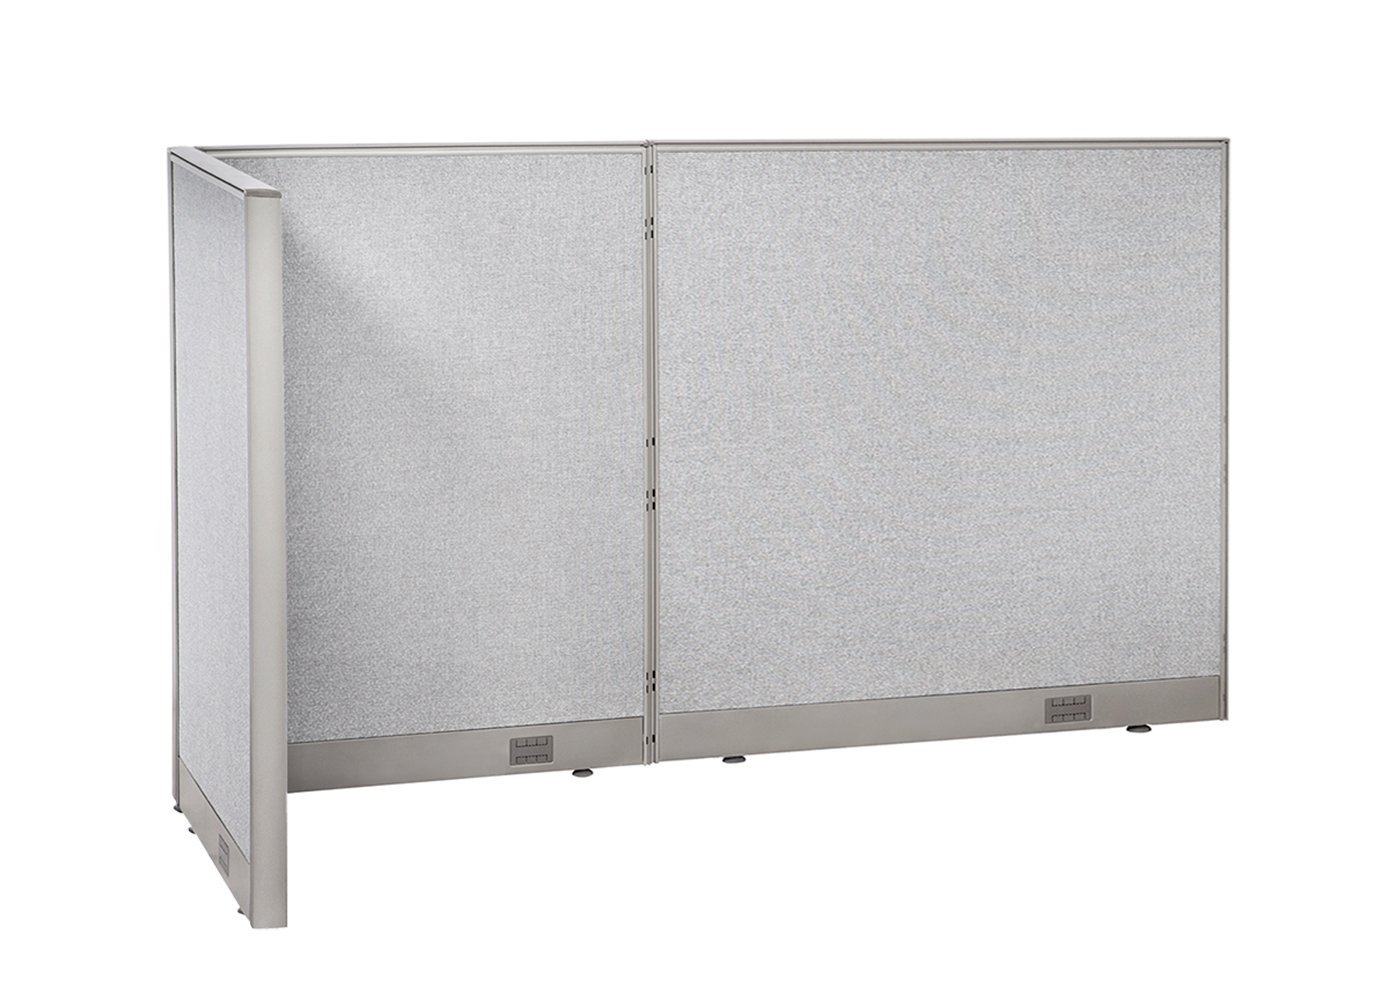 office room dividers. GOF L-Shaped Freestanding Office Panel Cubicle Wall Divider Partition 36D X 84W 48H Room Dividers